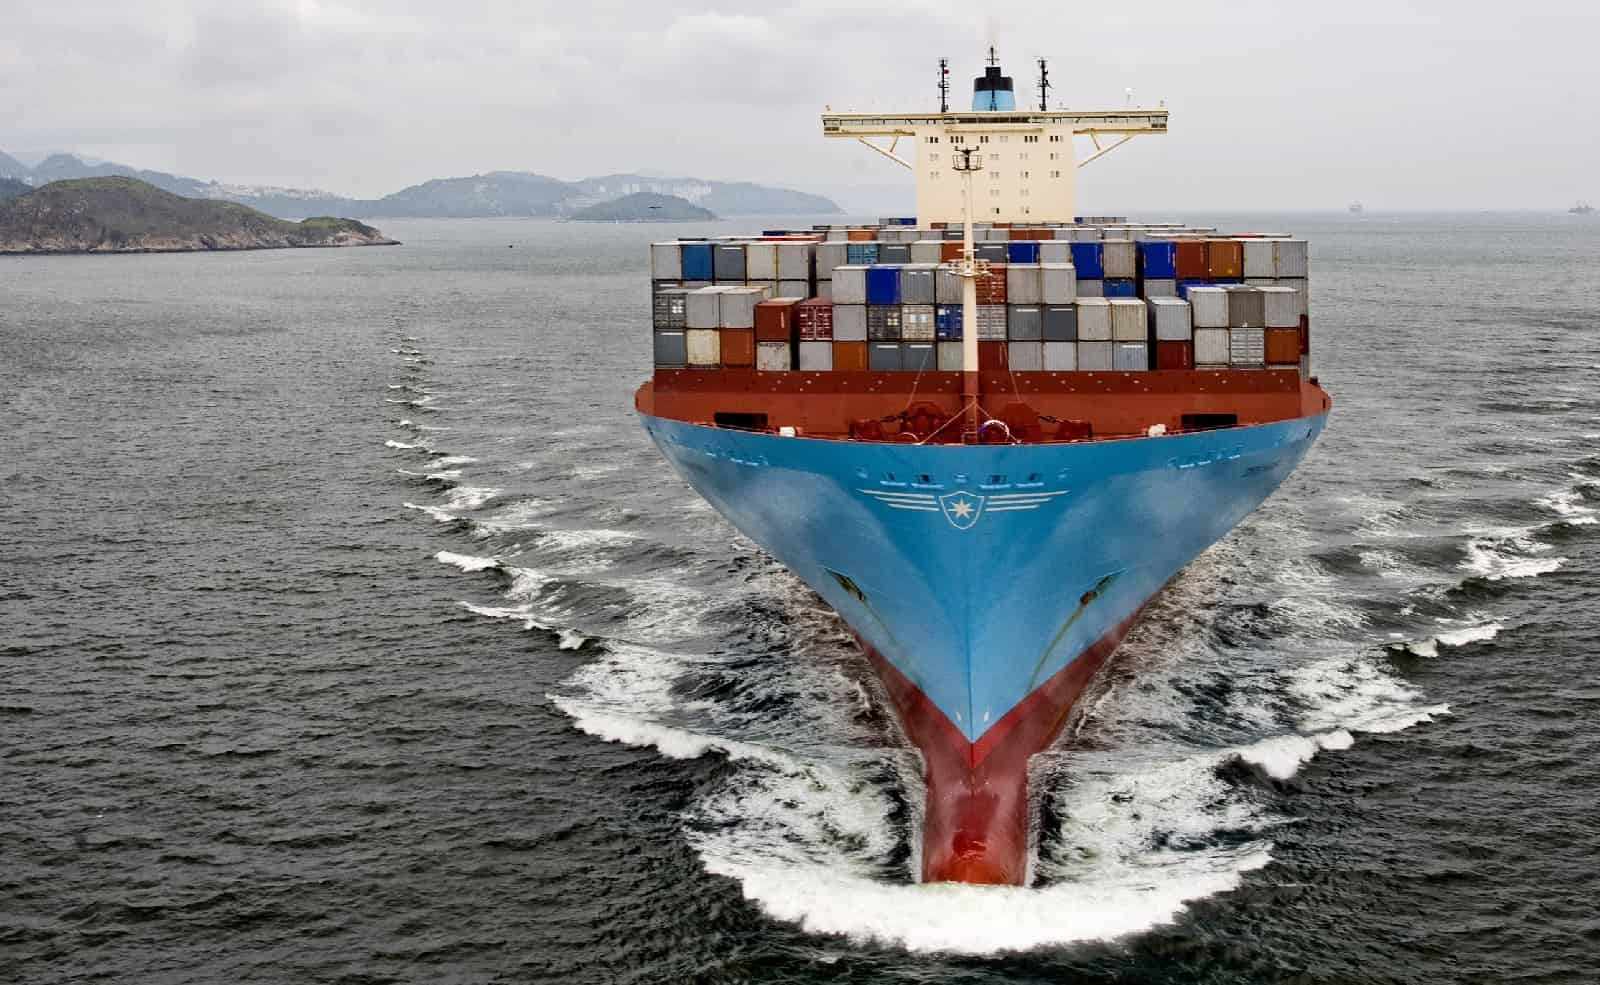 Global containership fleet forecast to expand by 1.44 million TEU